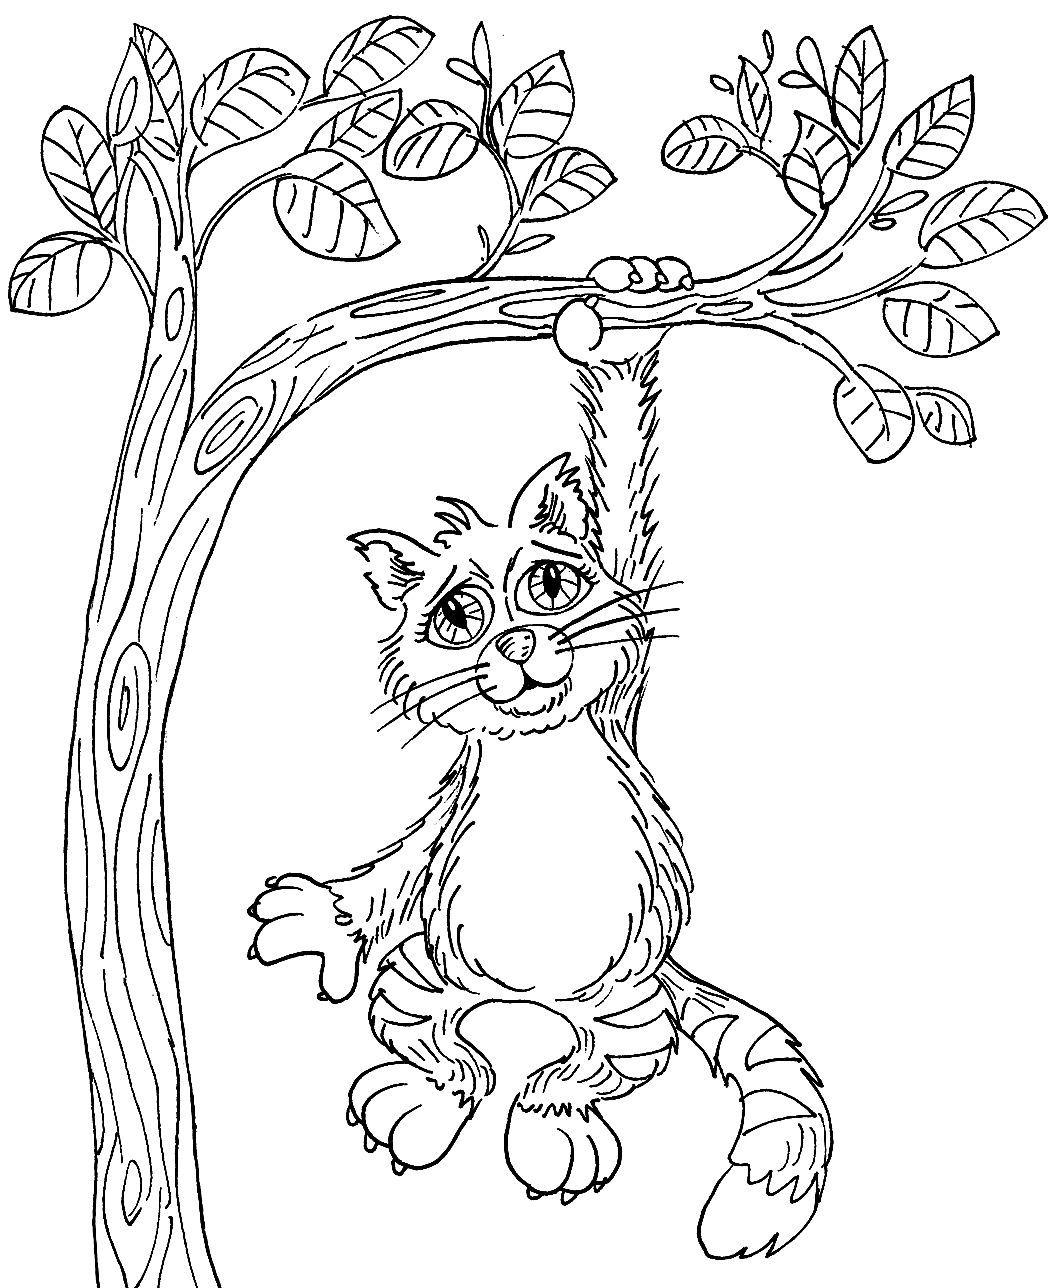 Hang In There Kitty F Cat Coloring Page Coloring Pages Coloring Books